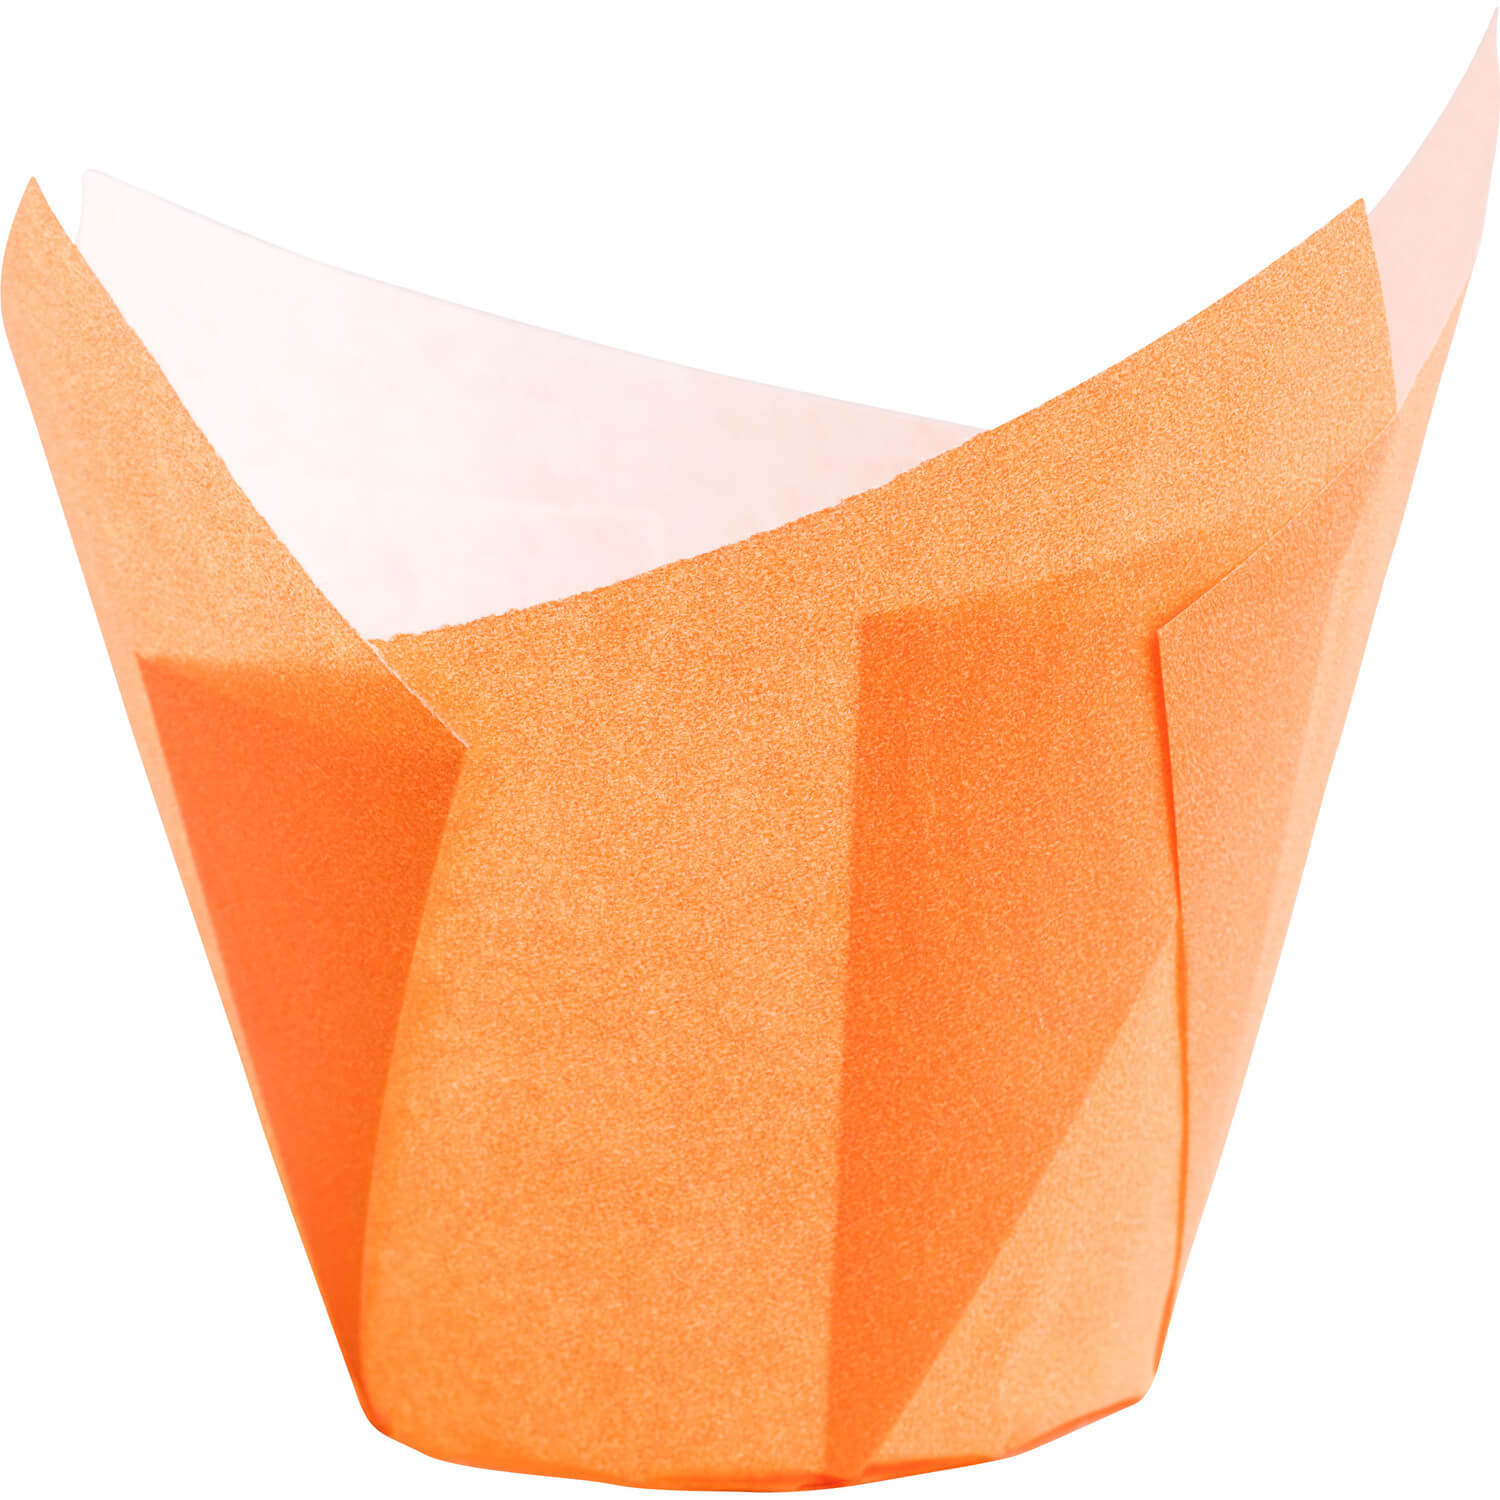 Muffin-Tulip-Wraps, orange, 160x160 mm, 200 Stk.